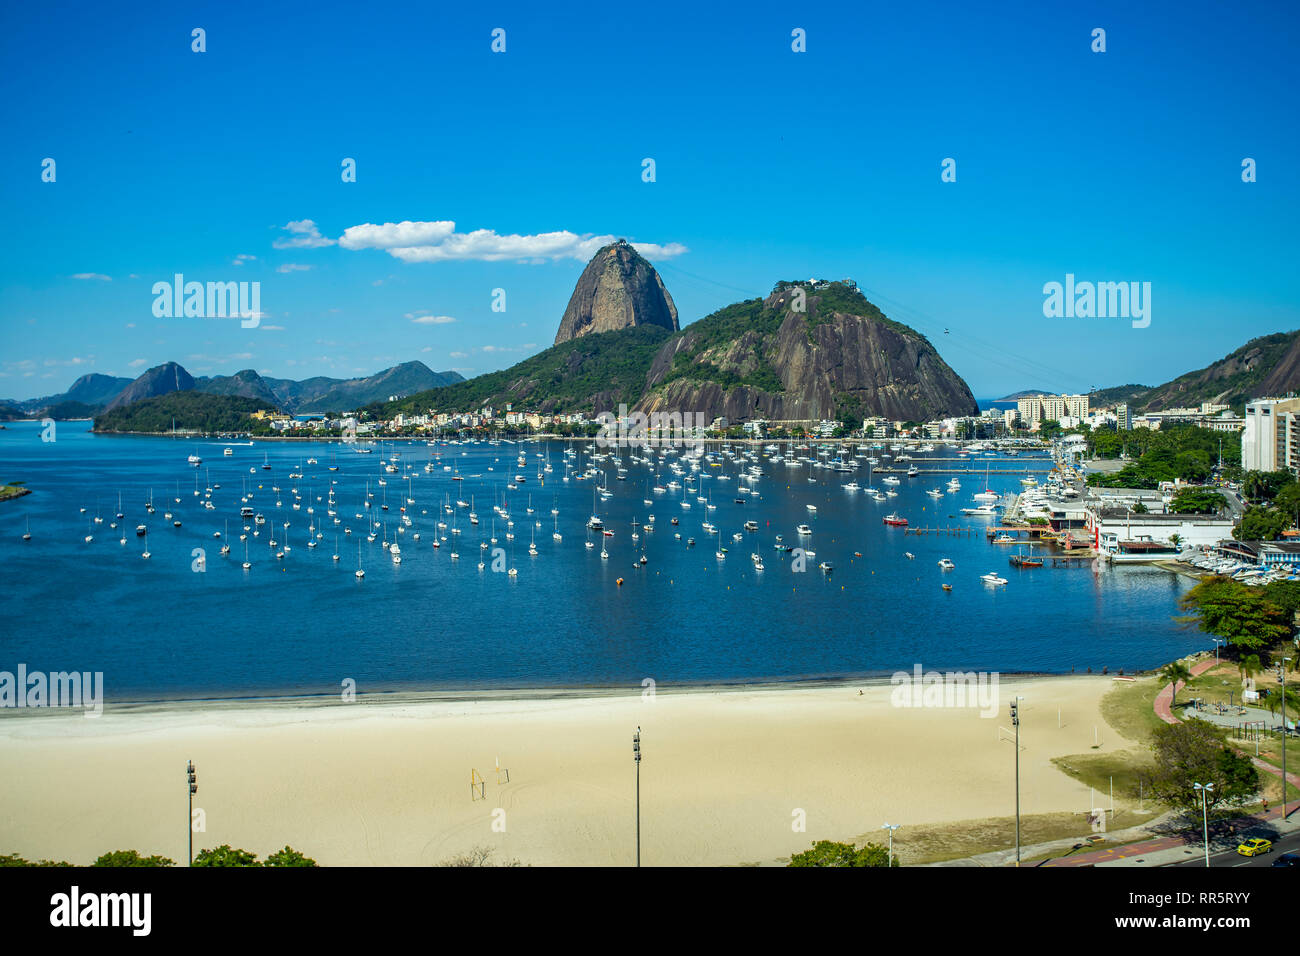 Exotic mountains. Famous mountains. Mountain of the Sugar Loaf in Rio de Janeiro, Brazil South America. Panoramic view of boats and yachts in the mari - Stock Image